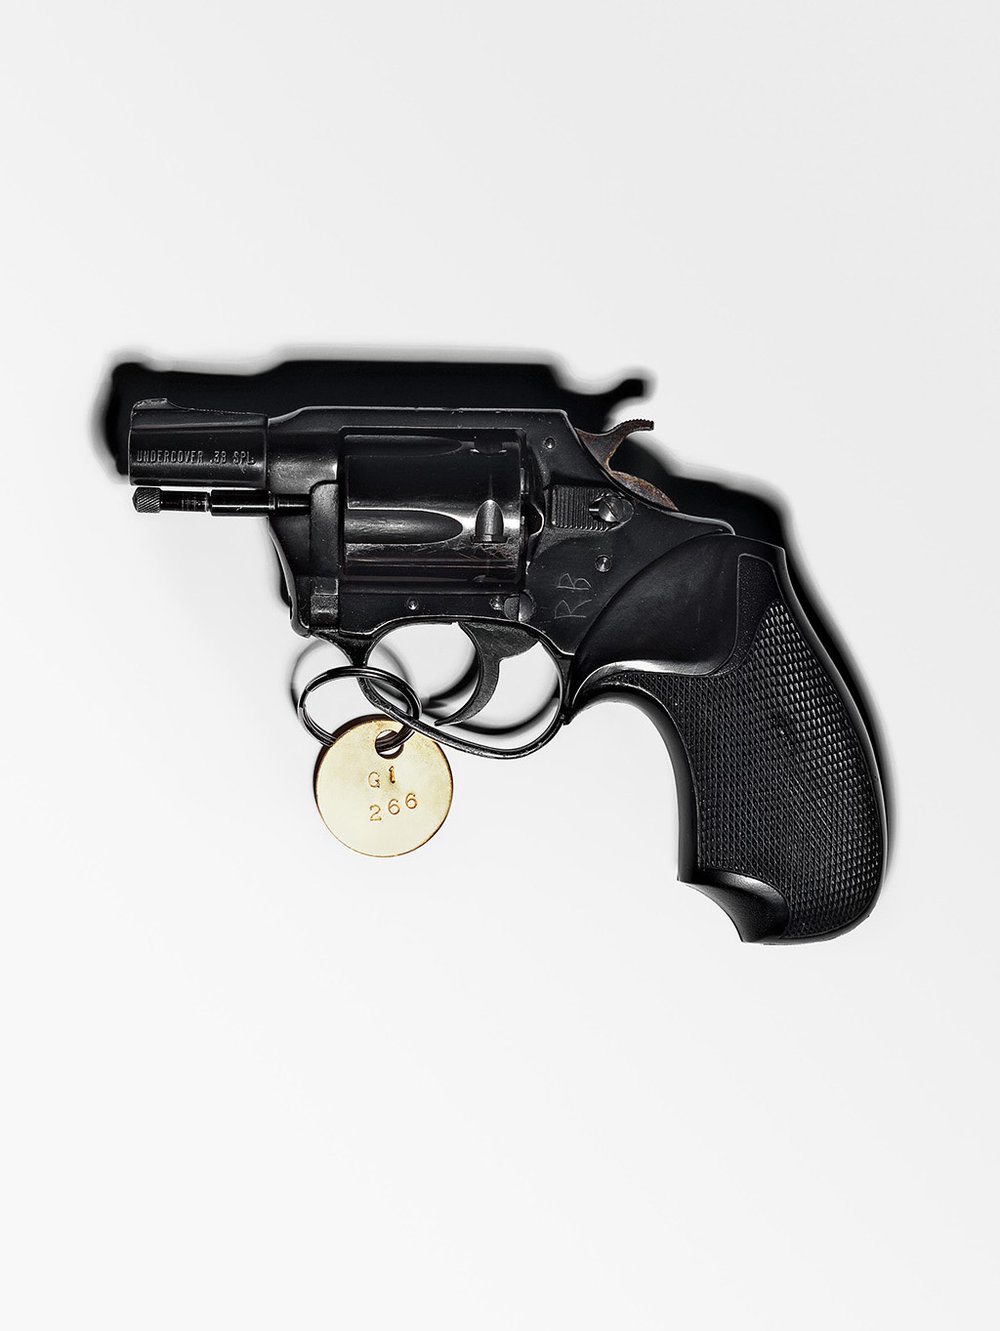 Document   Book Cover: The .38 caliber revolver used to assassinate John Lennon. (Photograph by  Henry Leutwyler )